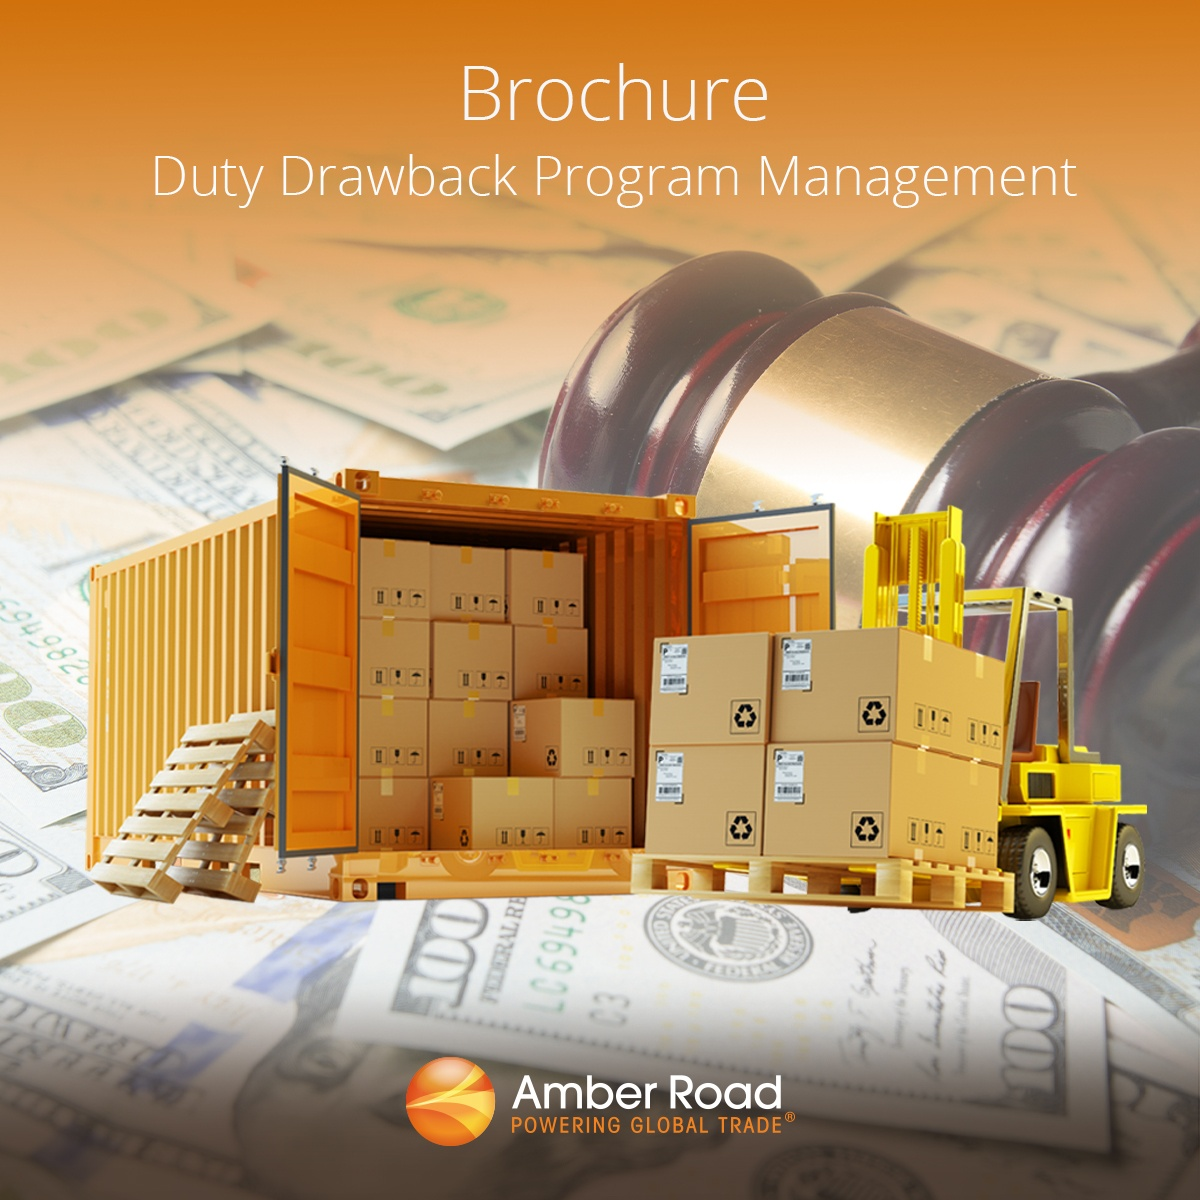 AR-Duty Drawback Program Management-Google Ad 1200x1200